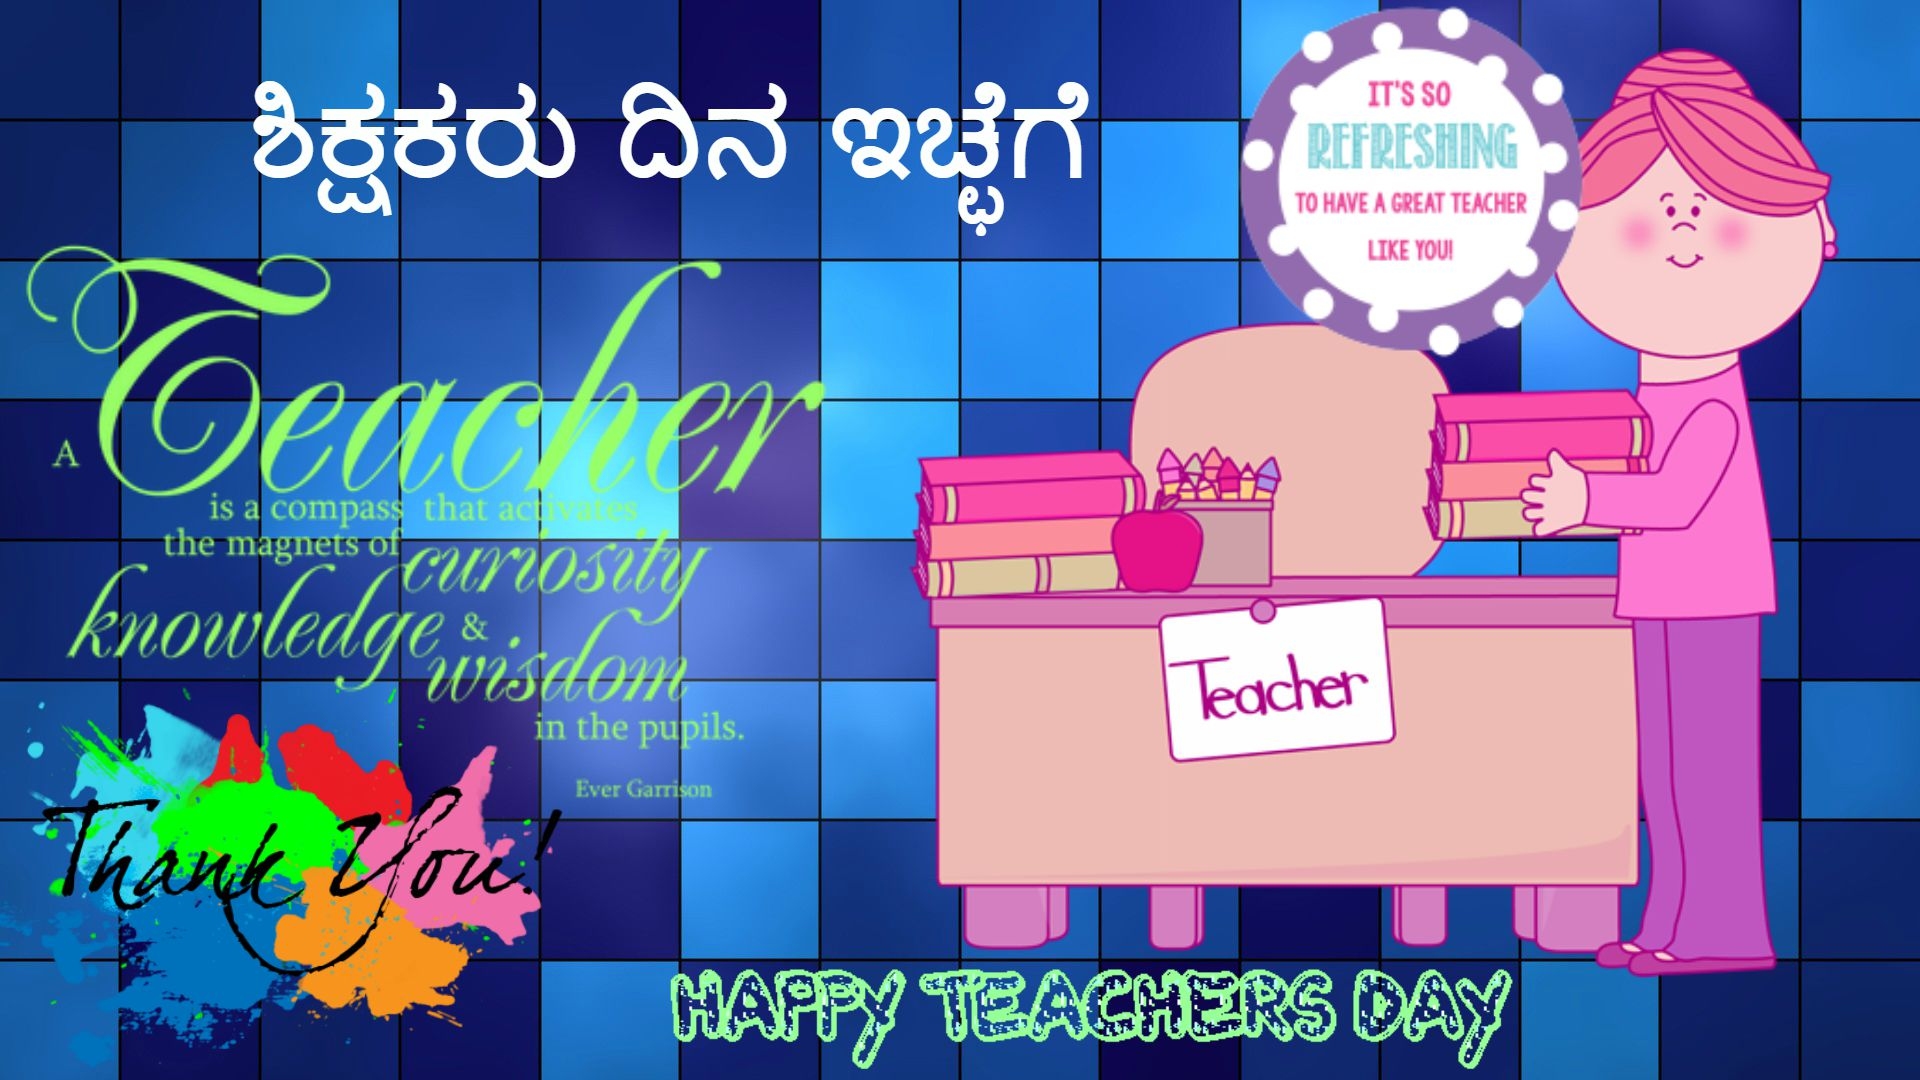 Day wishes in kannada with cards messages quotes teachers day wishes in kannada with cards messages quotes kristyandbryce Choice Image